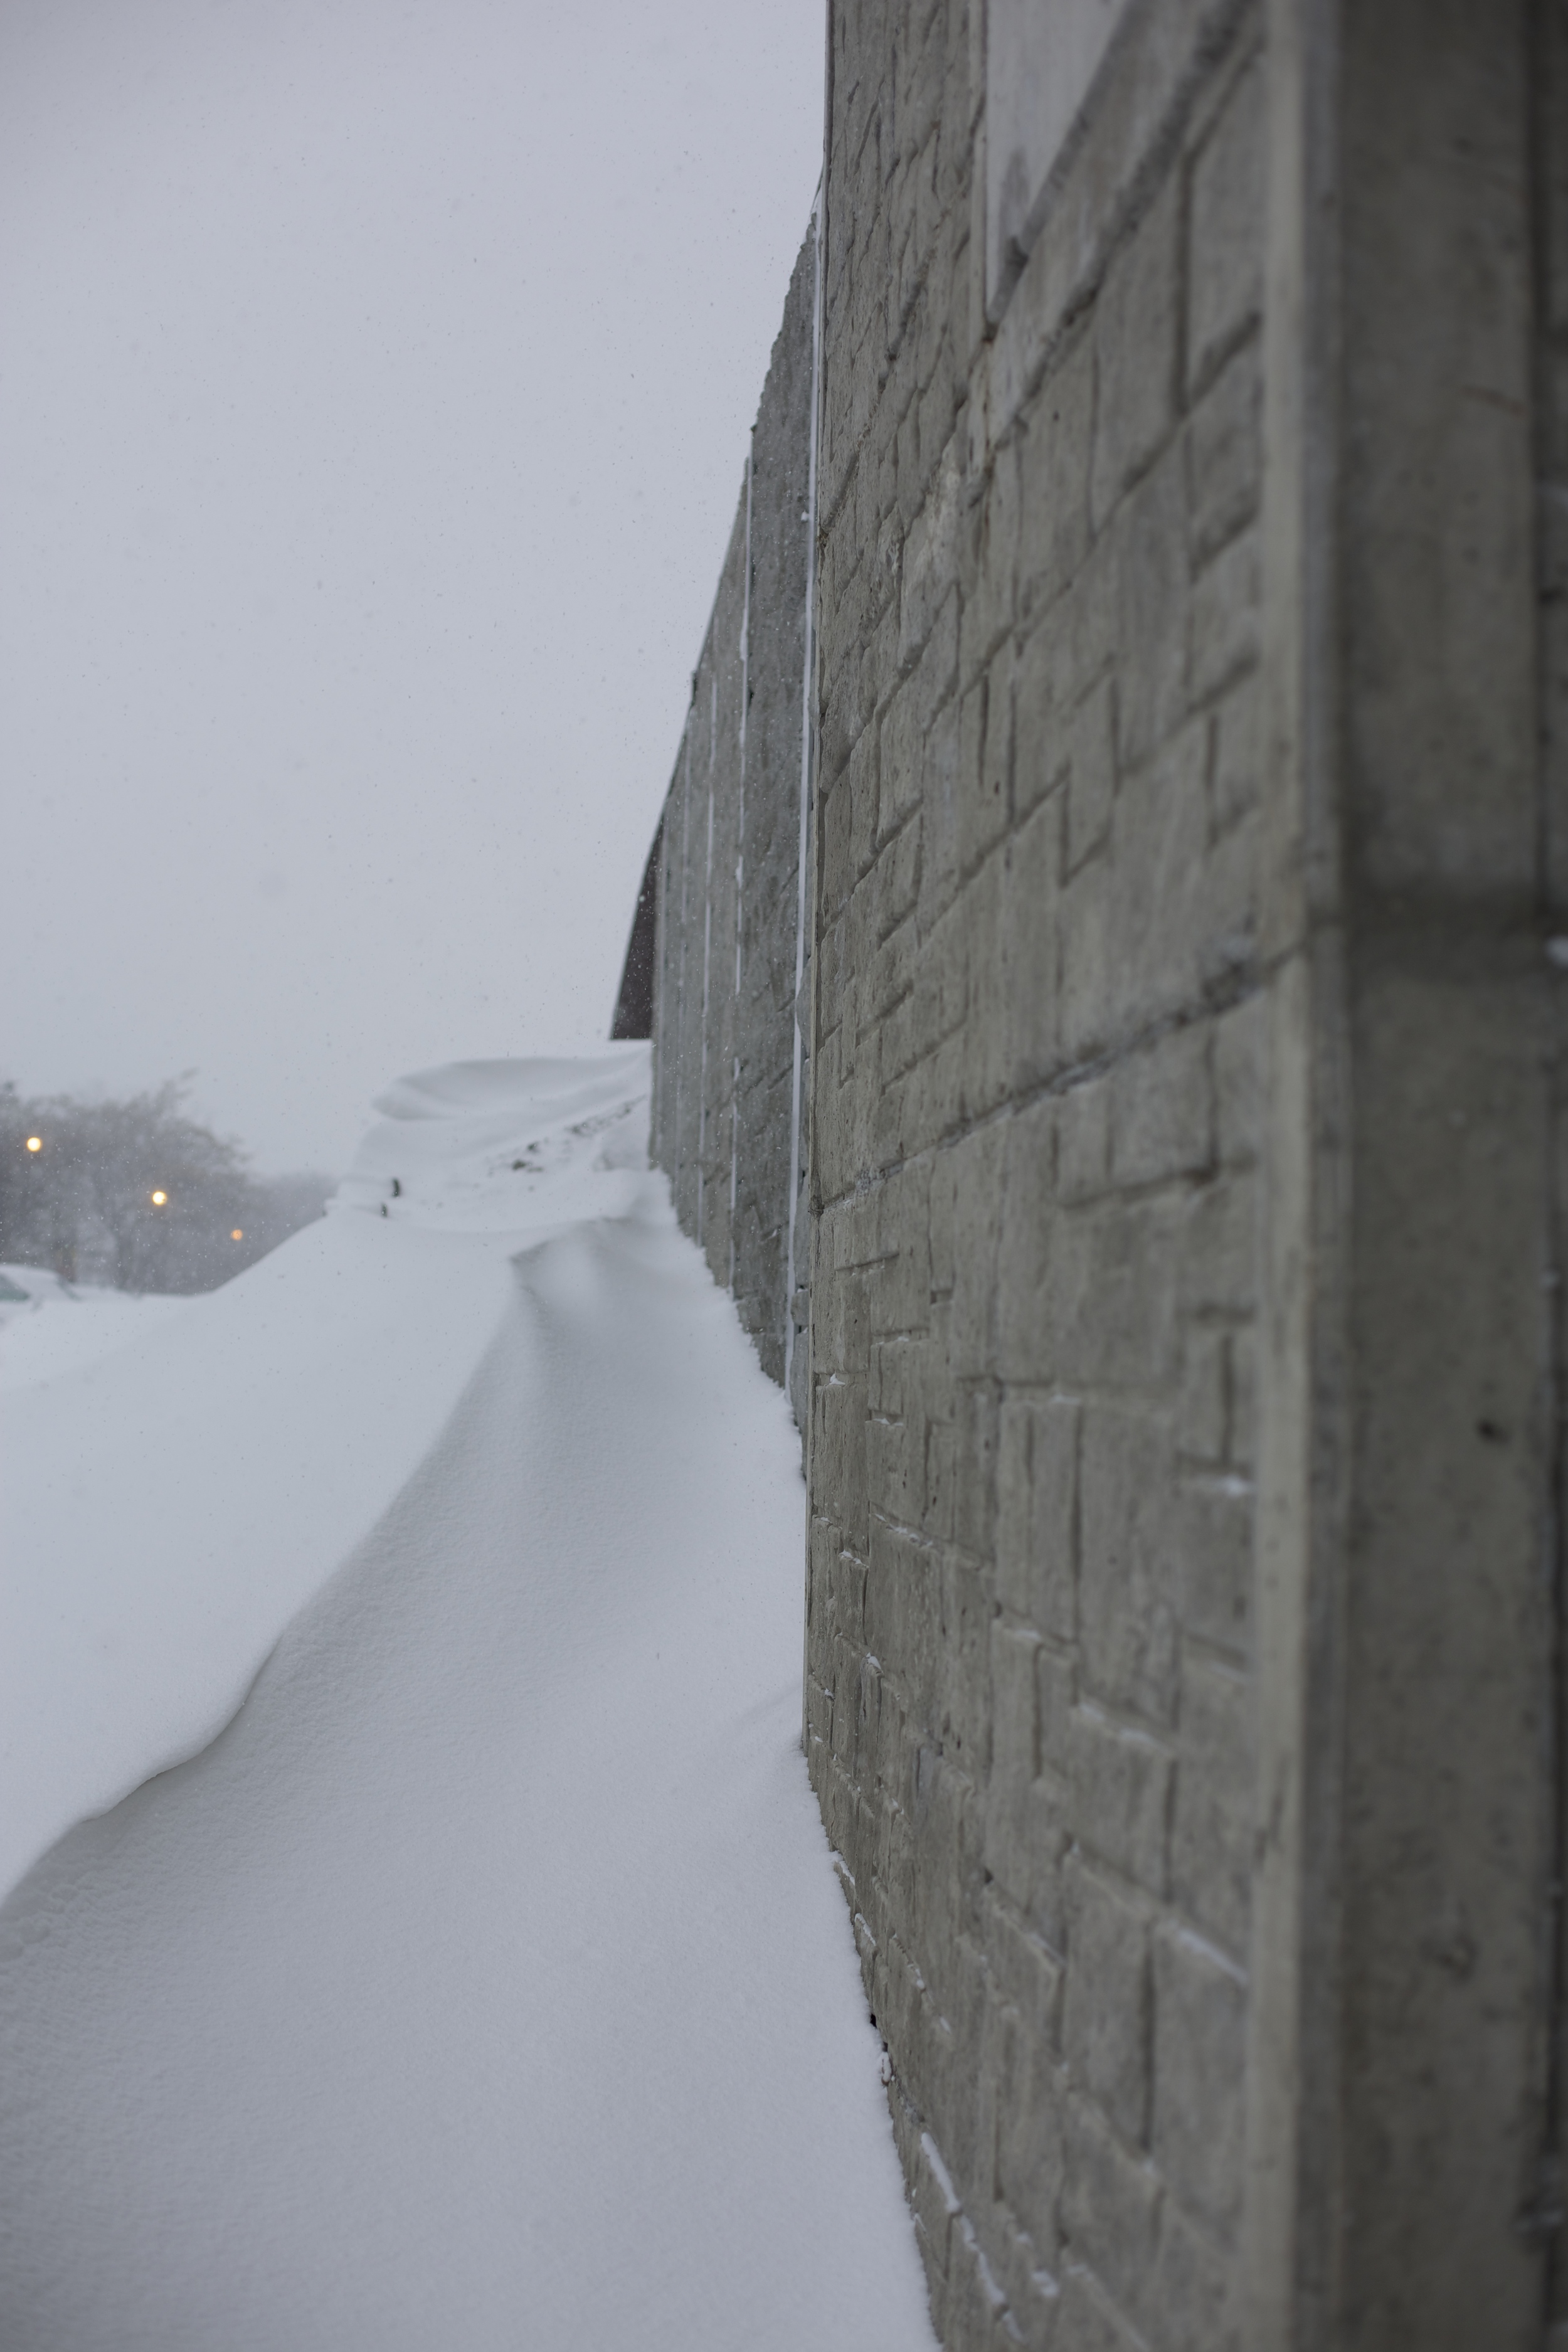 The Metra overpass focuses the wind, creating delicate snowdrift ranges